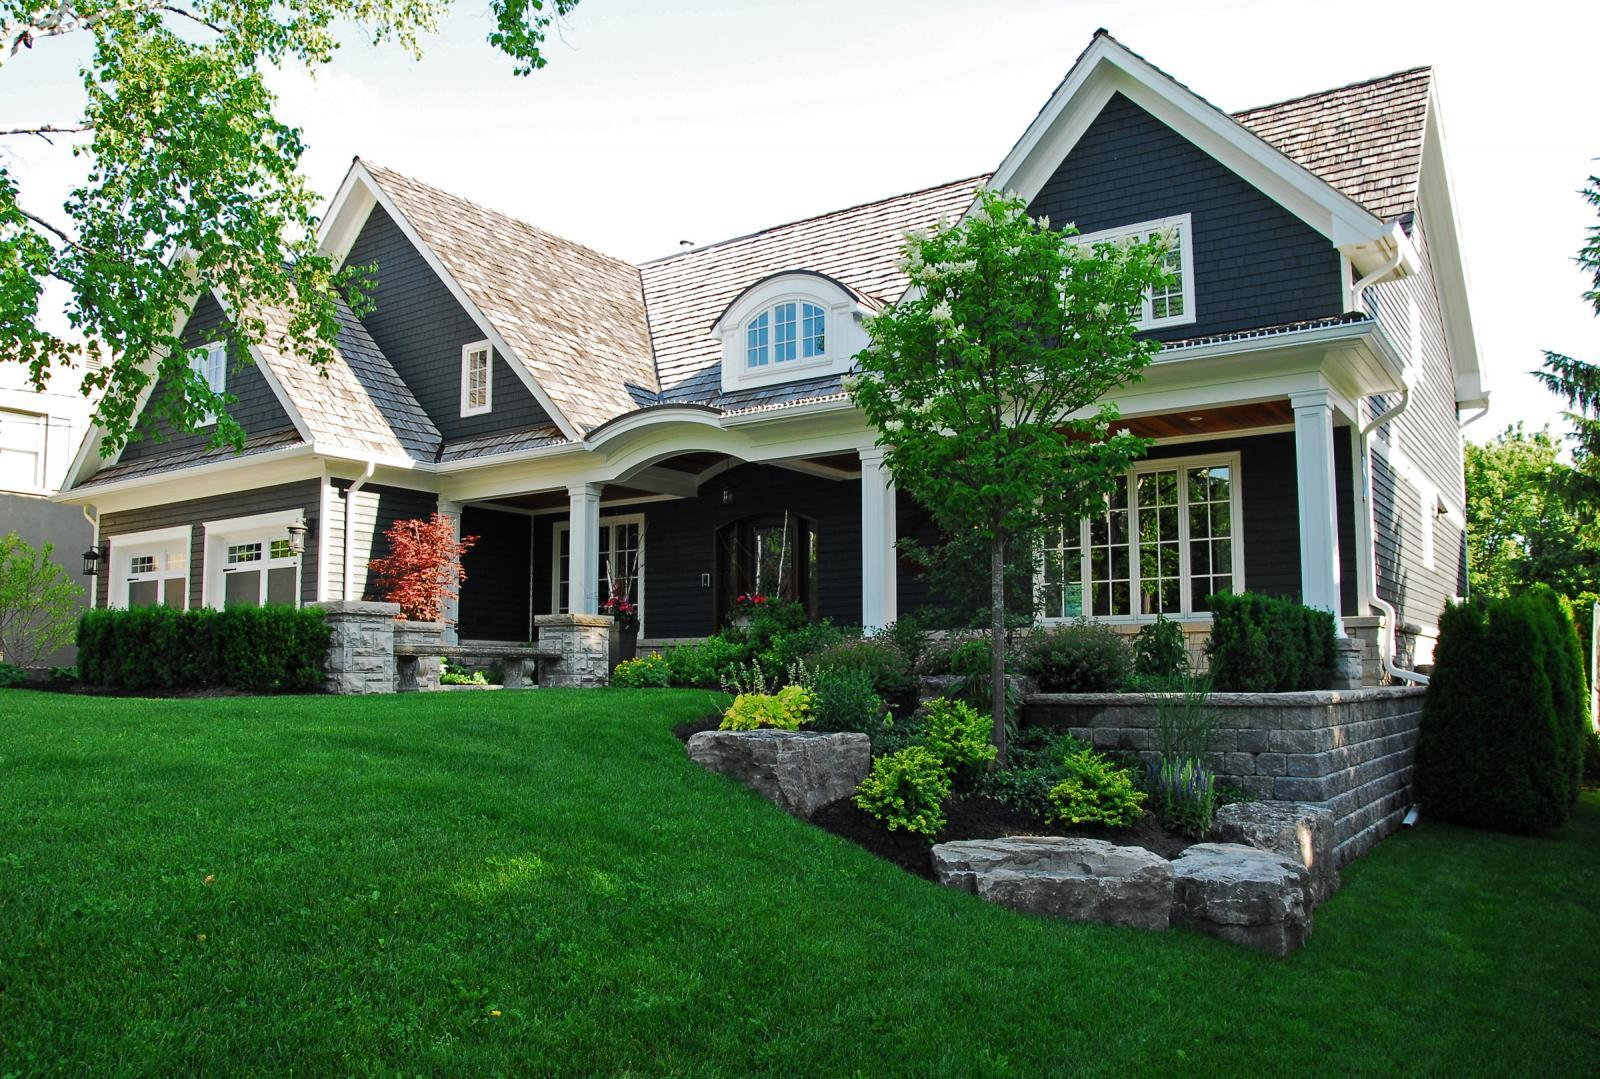 Landscaping for quick real estate sale